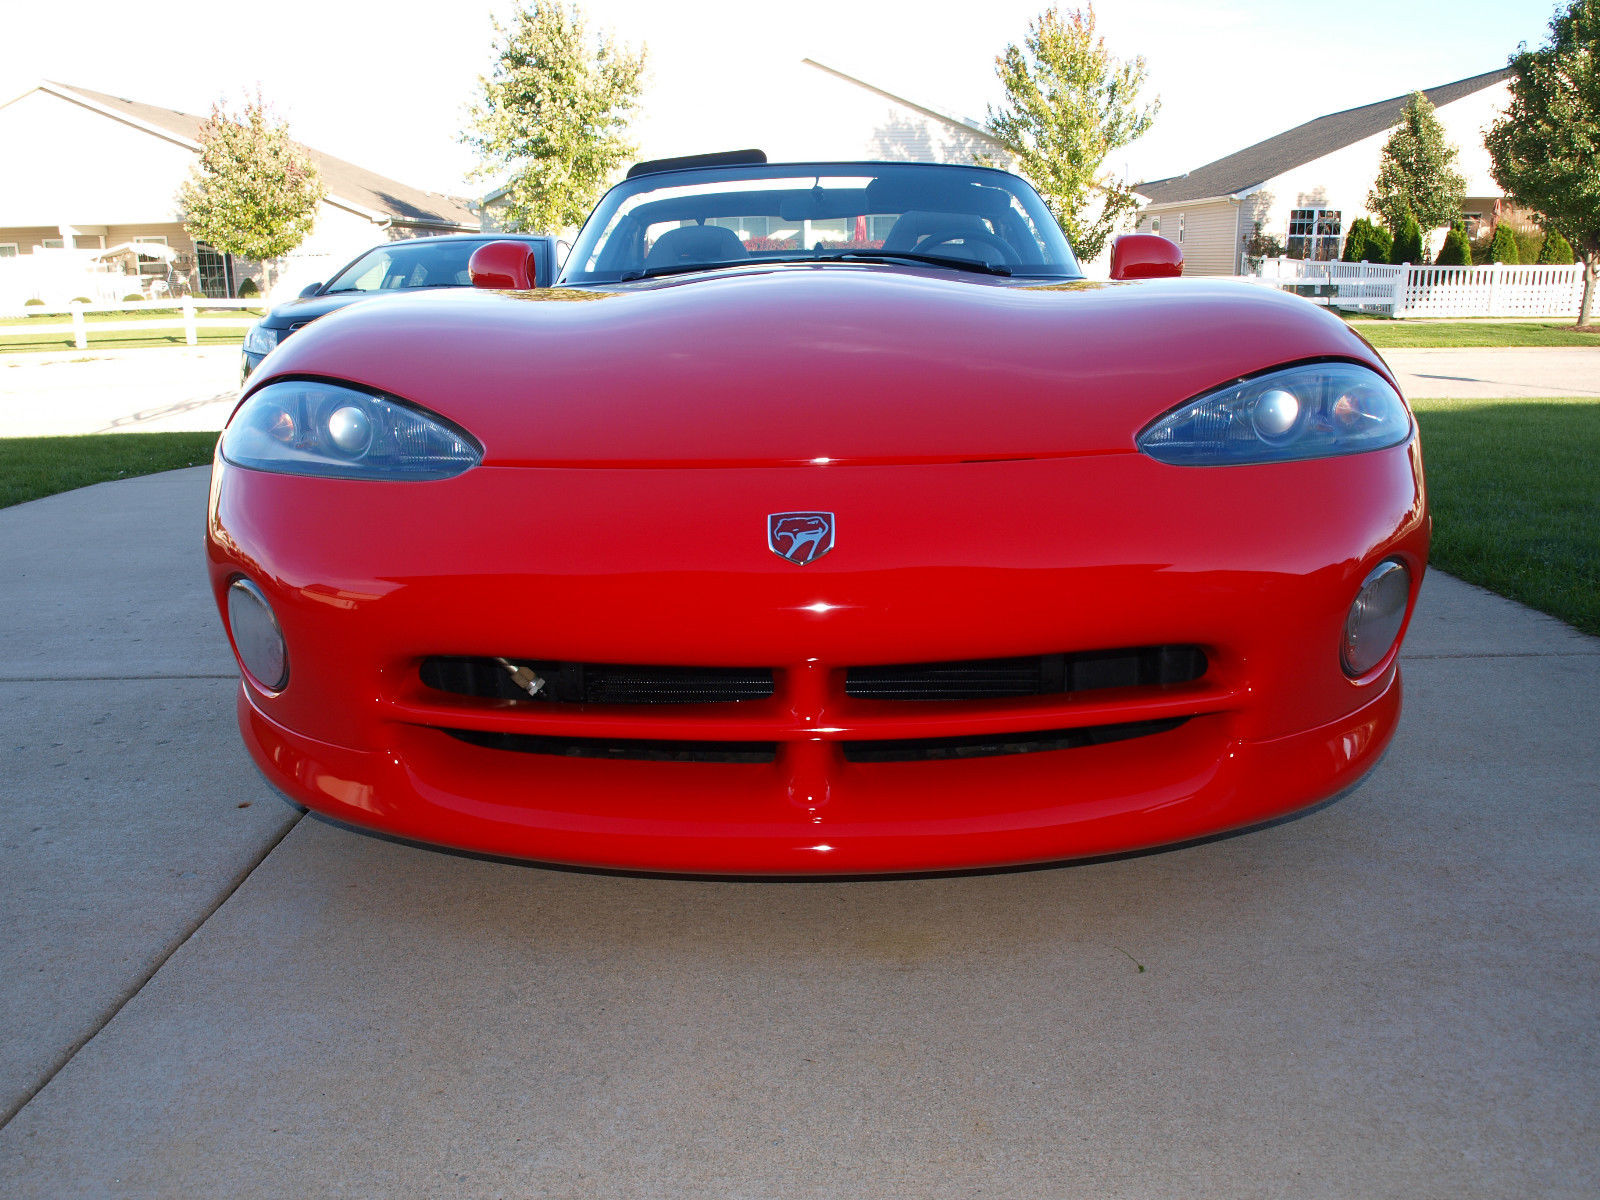 une dodge viper rt 10 avec seulement 811 km vendre 27500 hors taxes. Black Bedroom Furniture Sets. Home Design Ideas